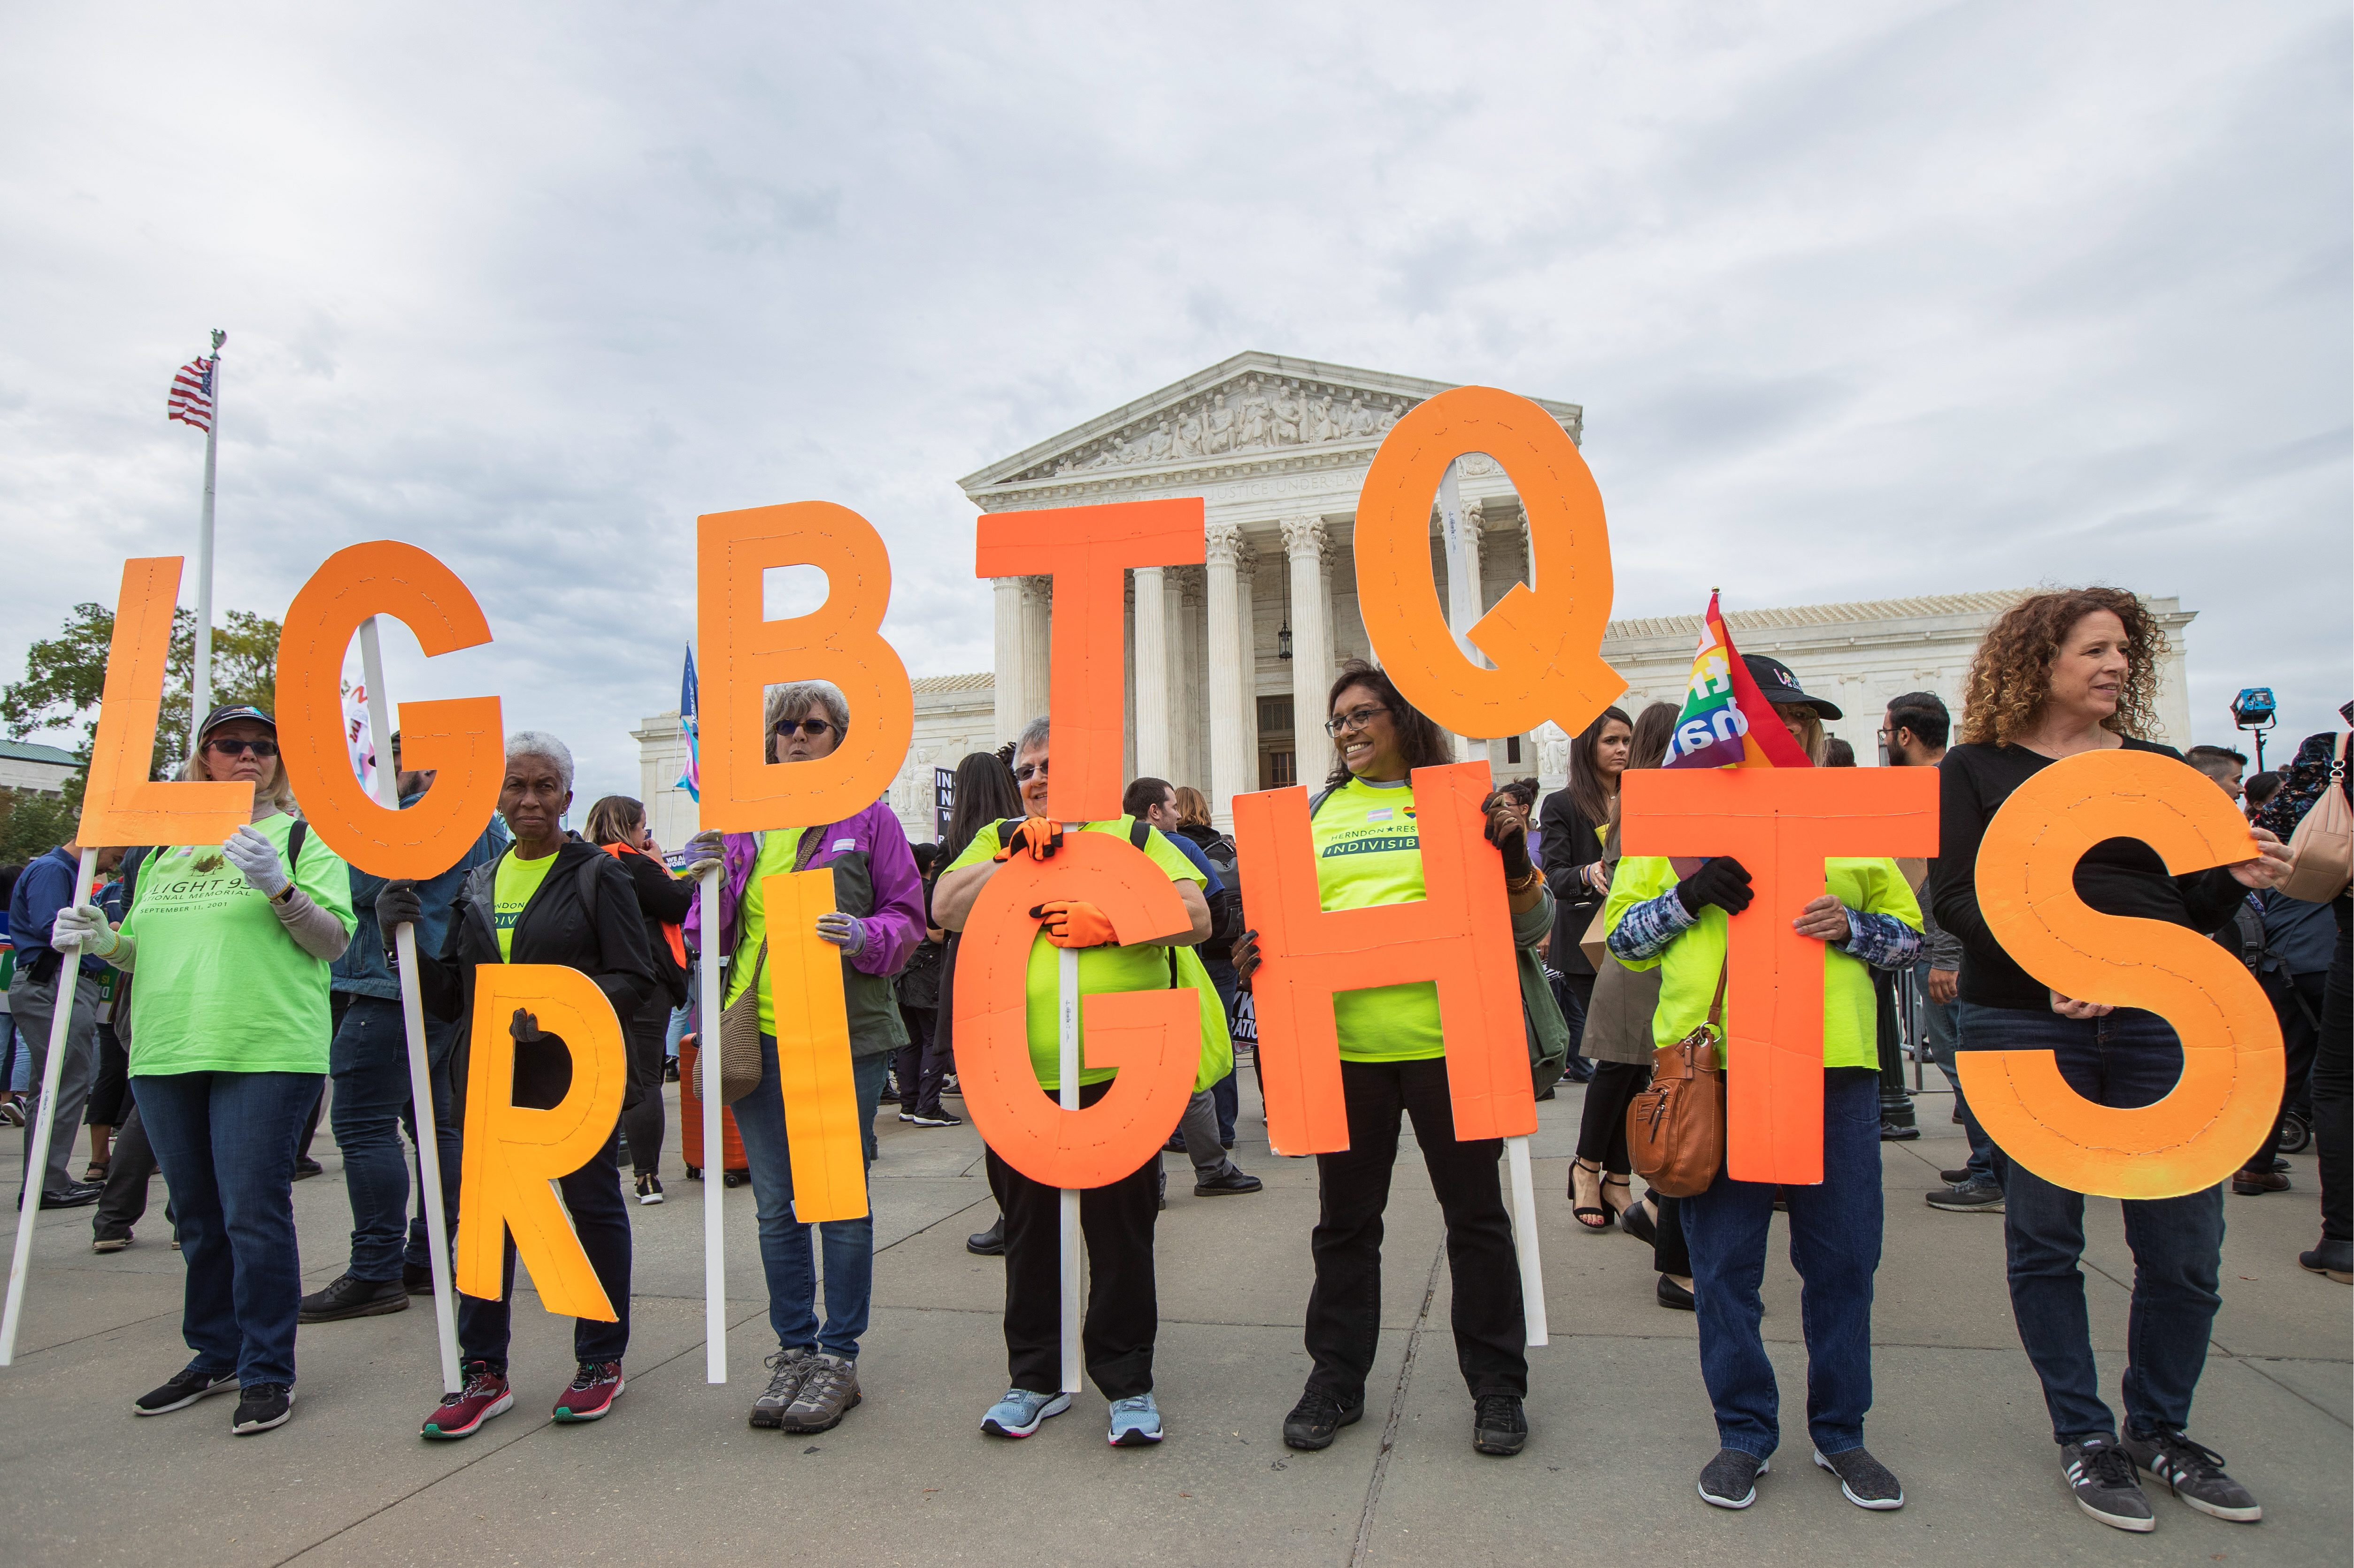 More cities enacting LGBTQ protections, Human Rights Campaign study fi